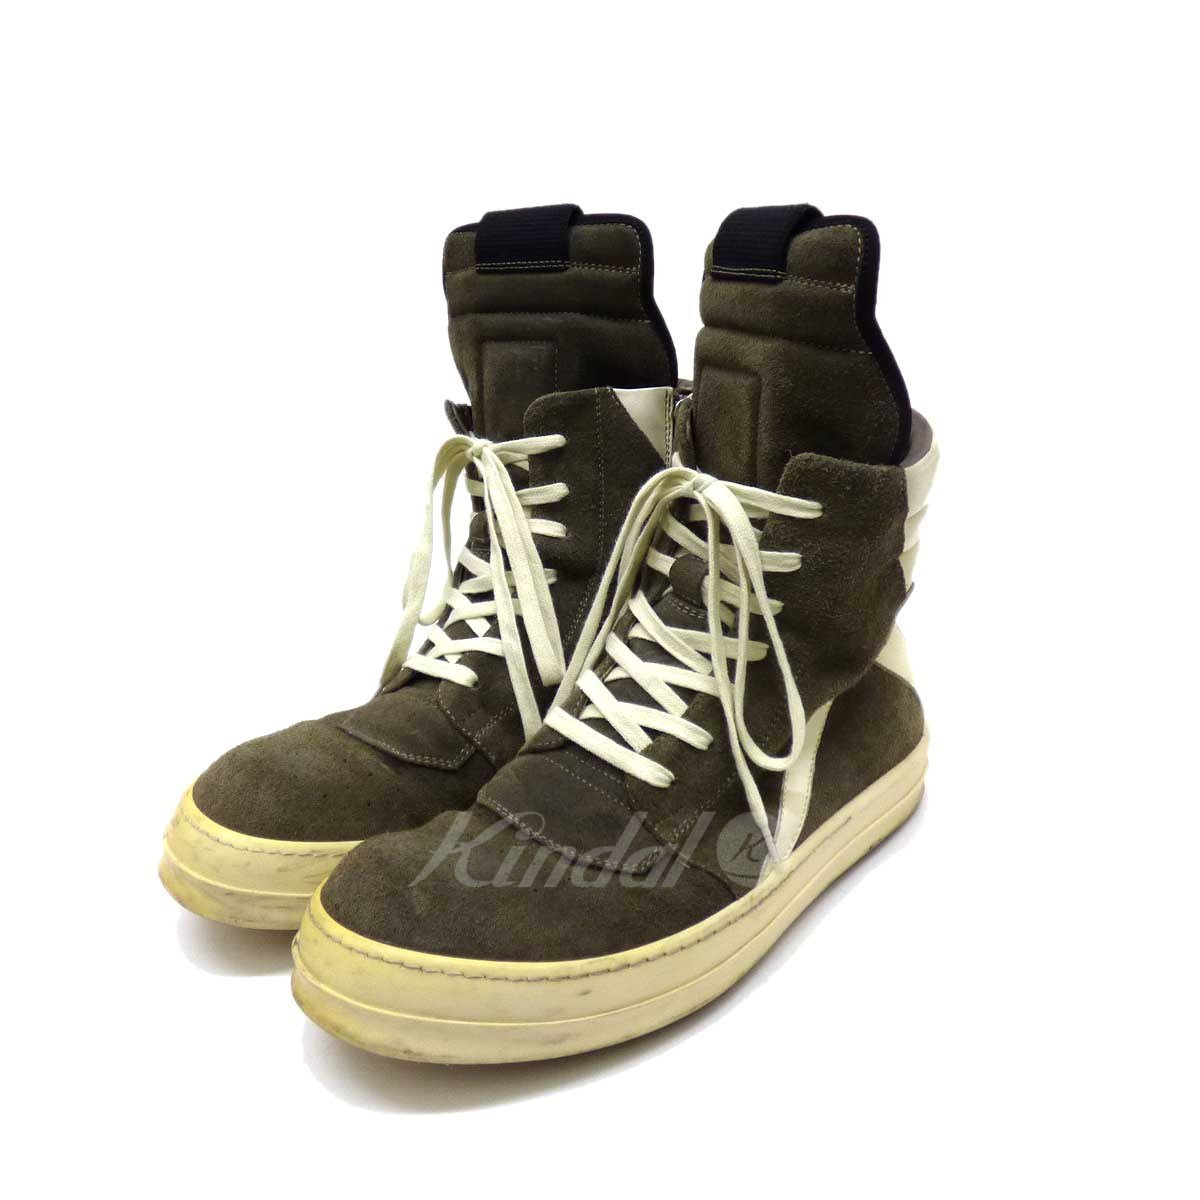 bas prix e3d82 192da Rick Owens geo-basket suede cloth higher frequency elimination sneakers  gray size: 42